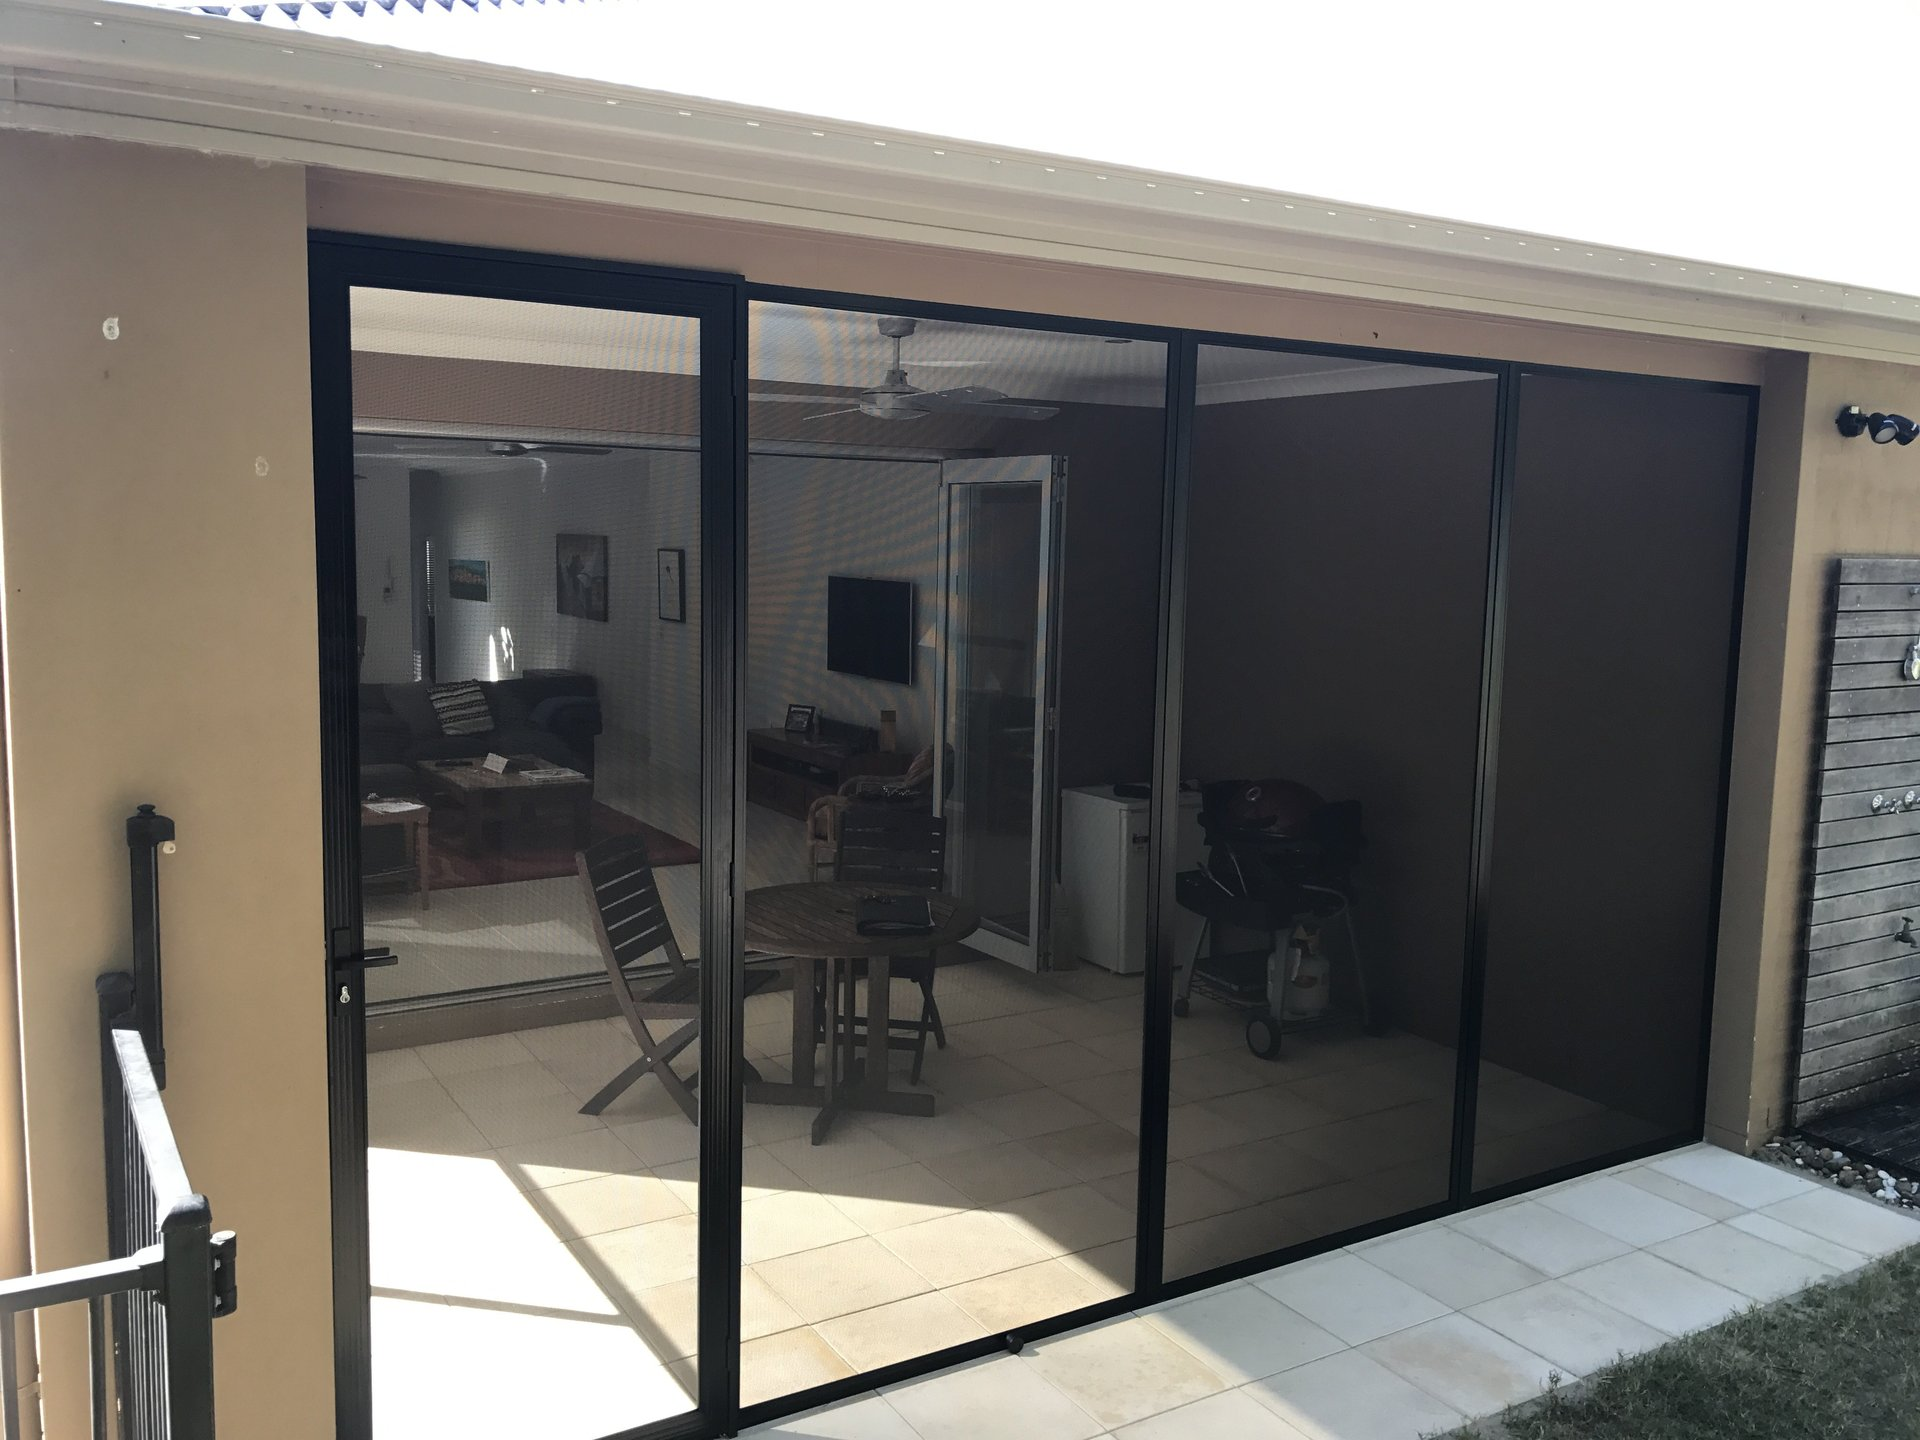 SecureView Stainless Steel Screened Patio Enclosure